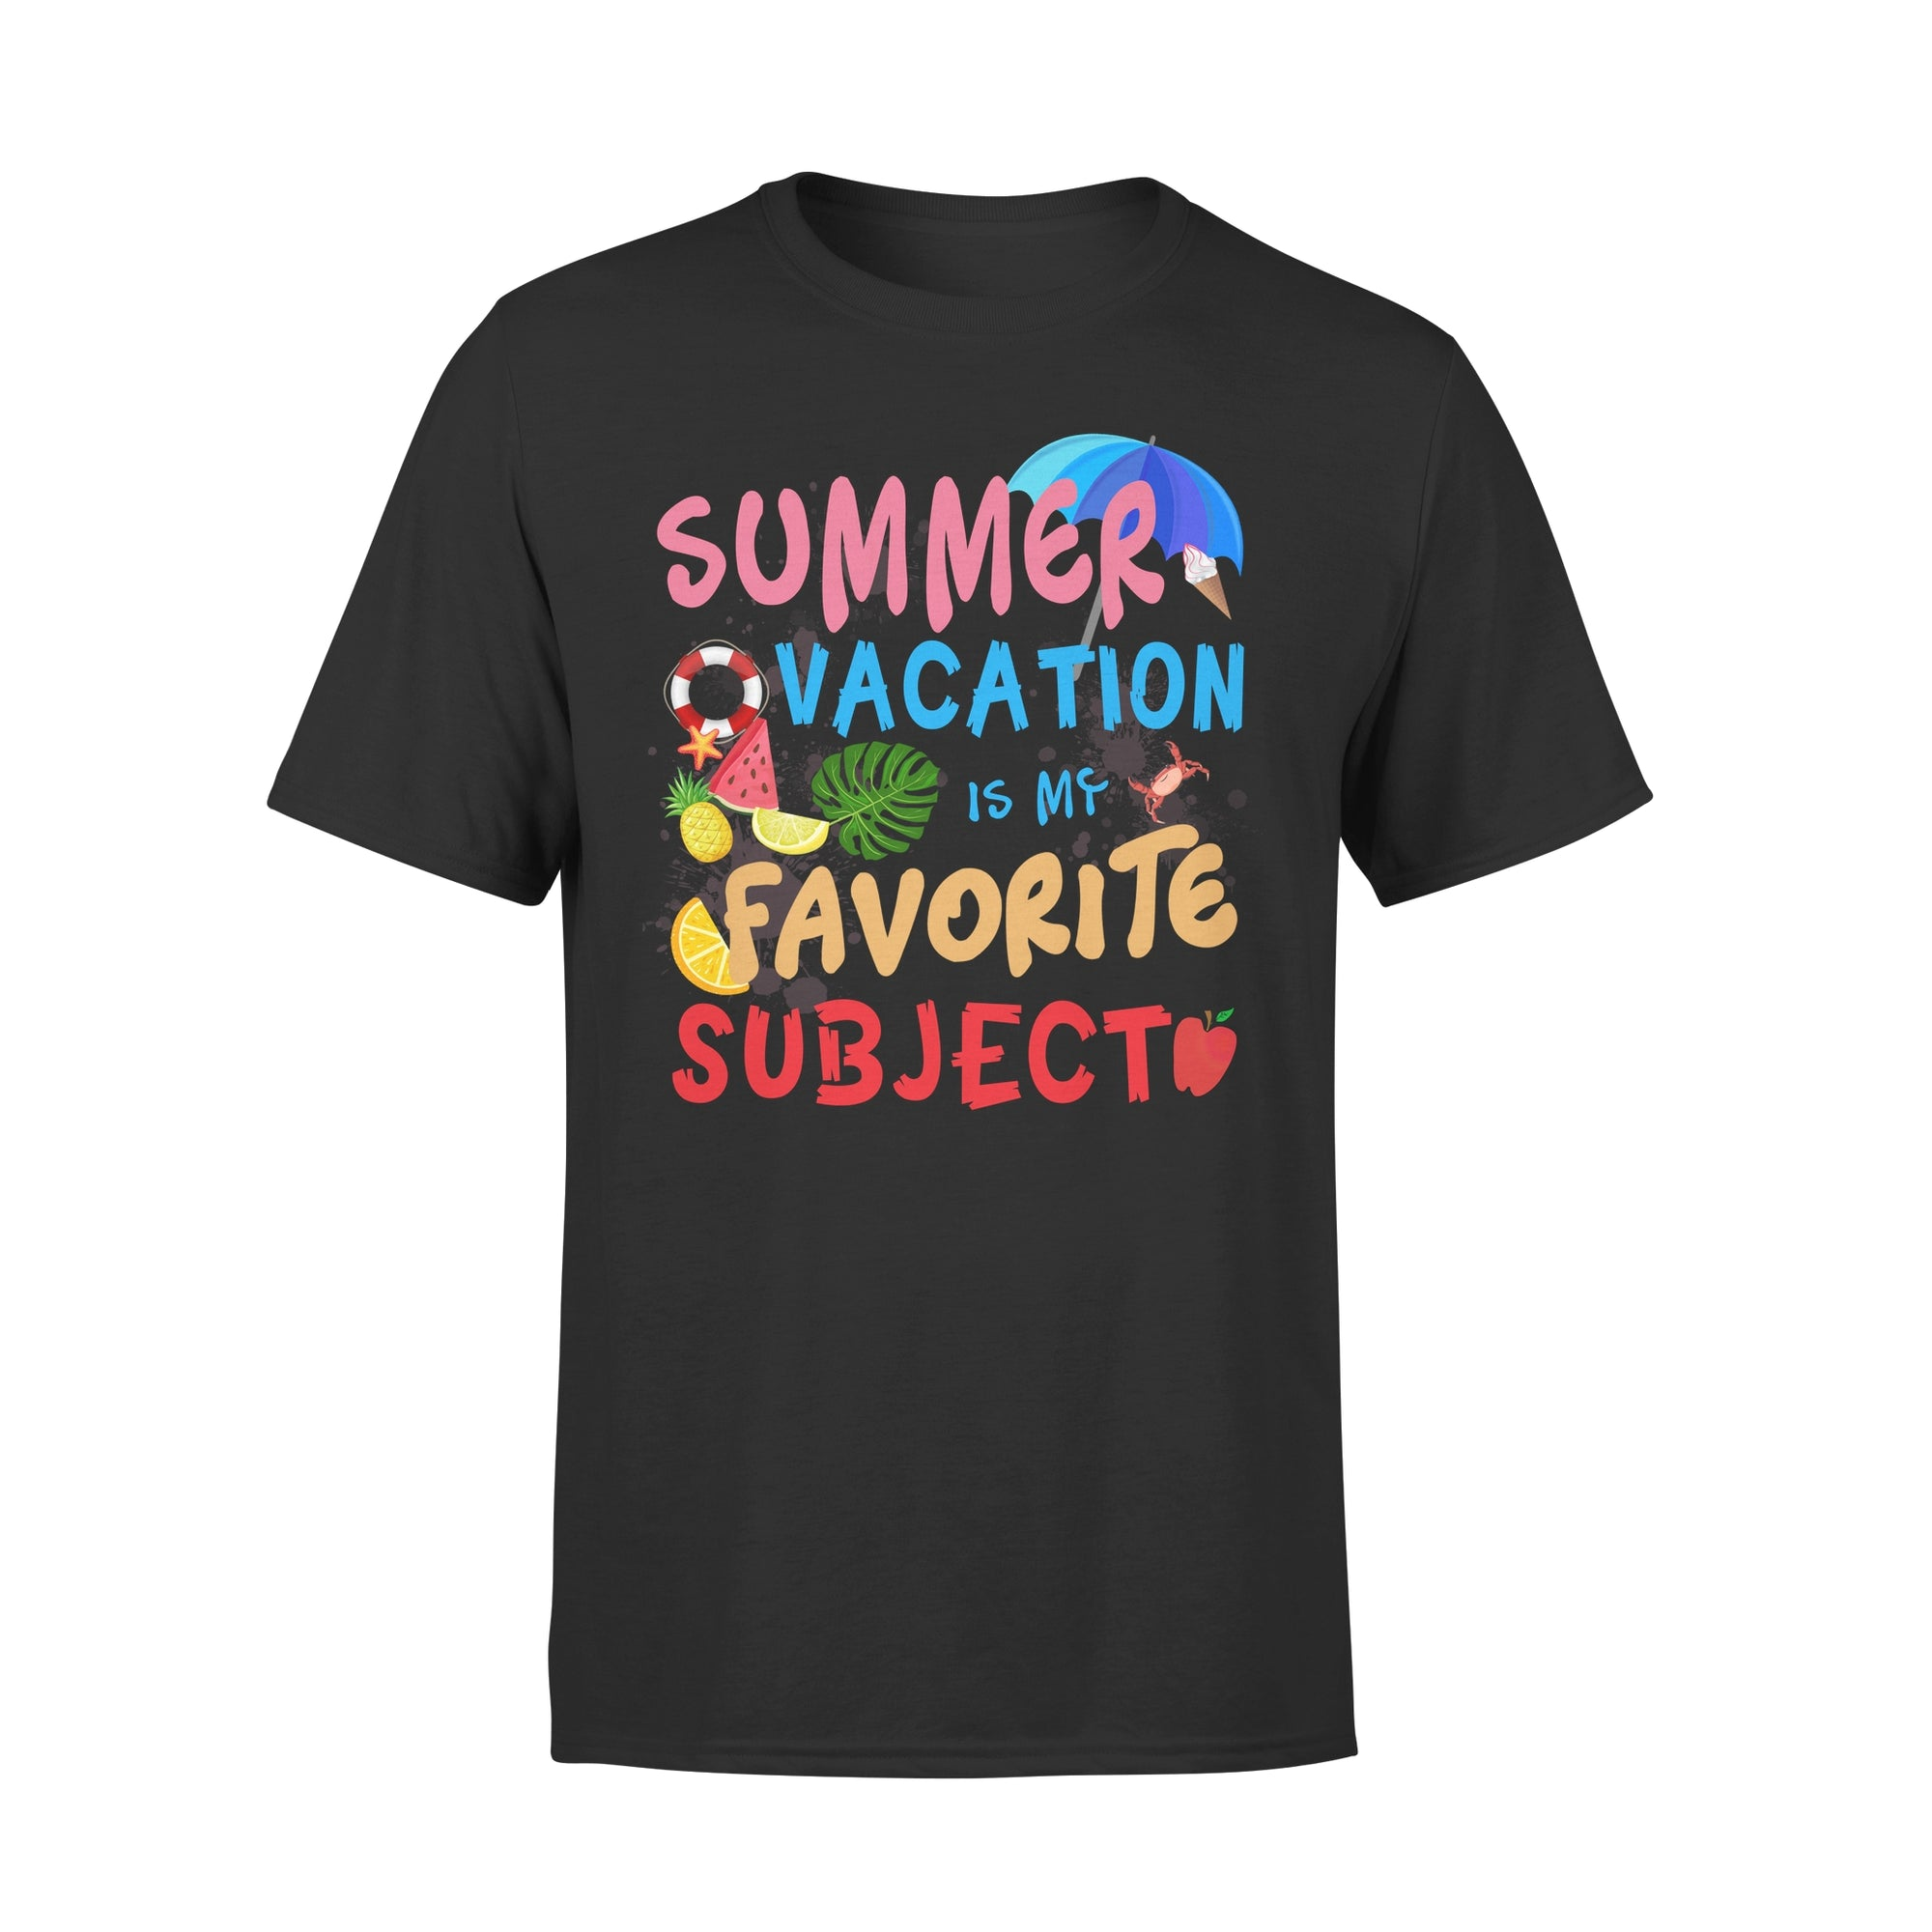 VIRA summer vacation Premium Tee for awesome teachers